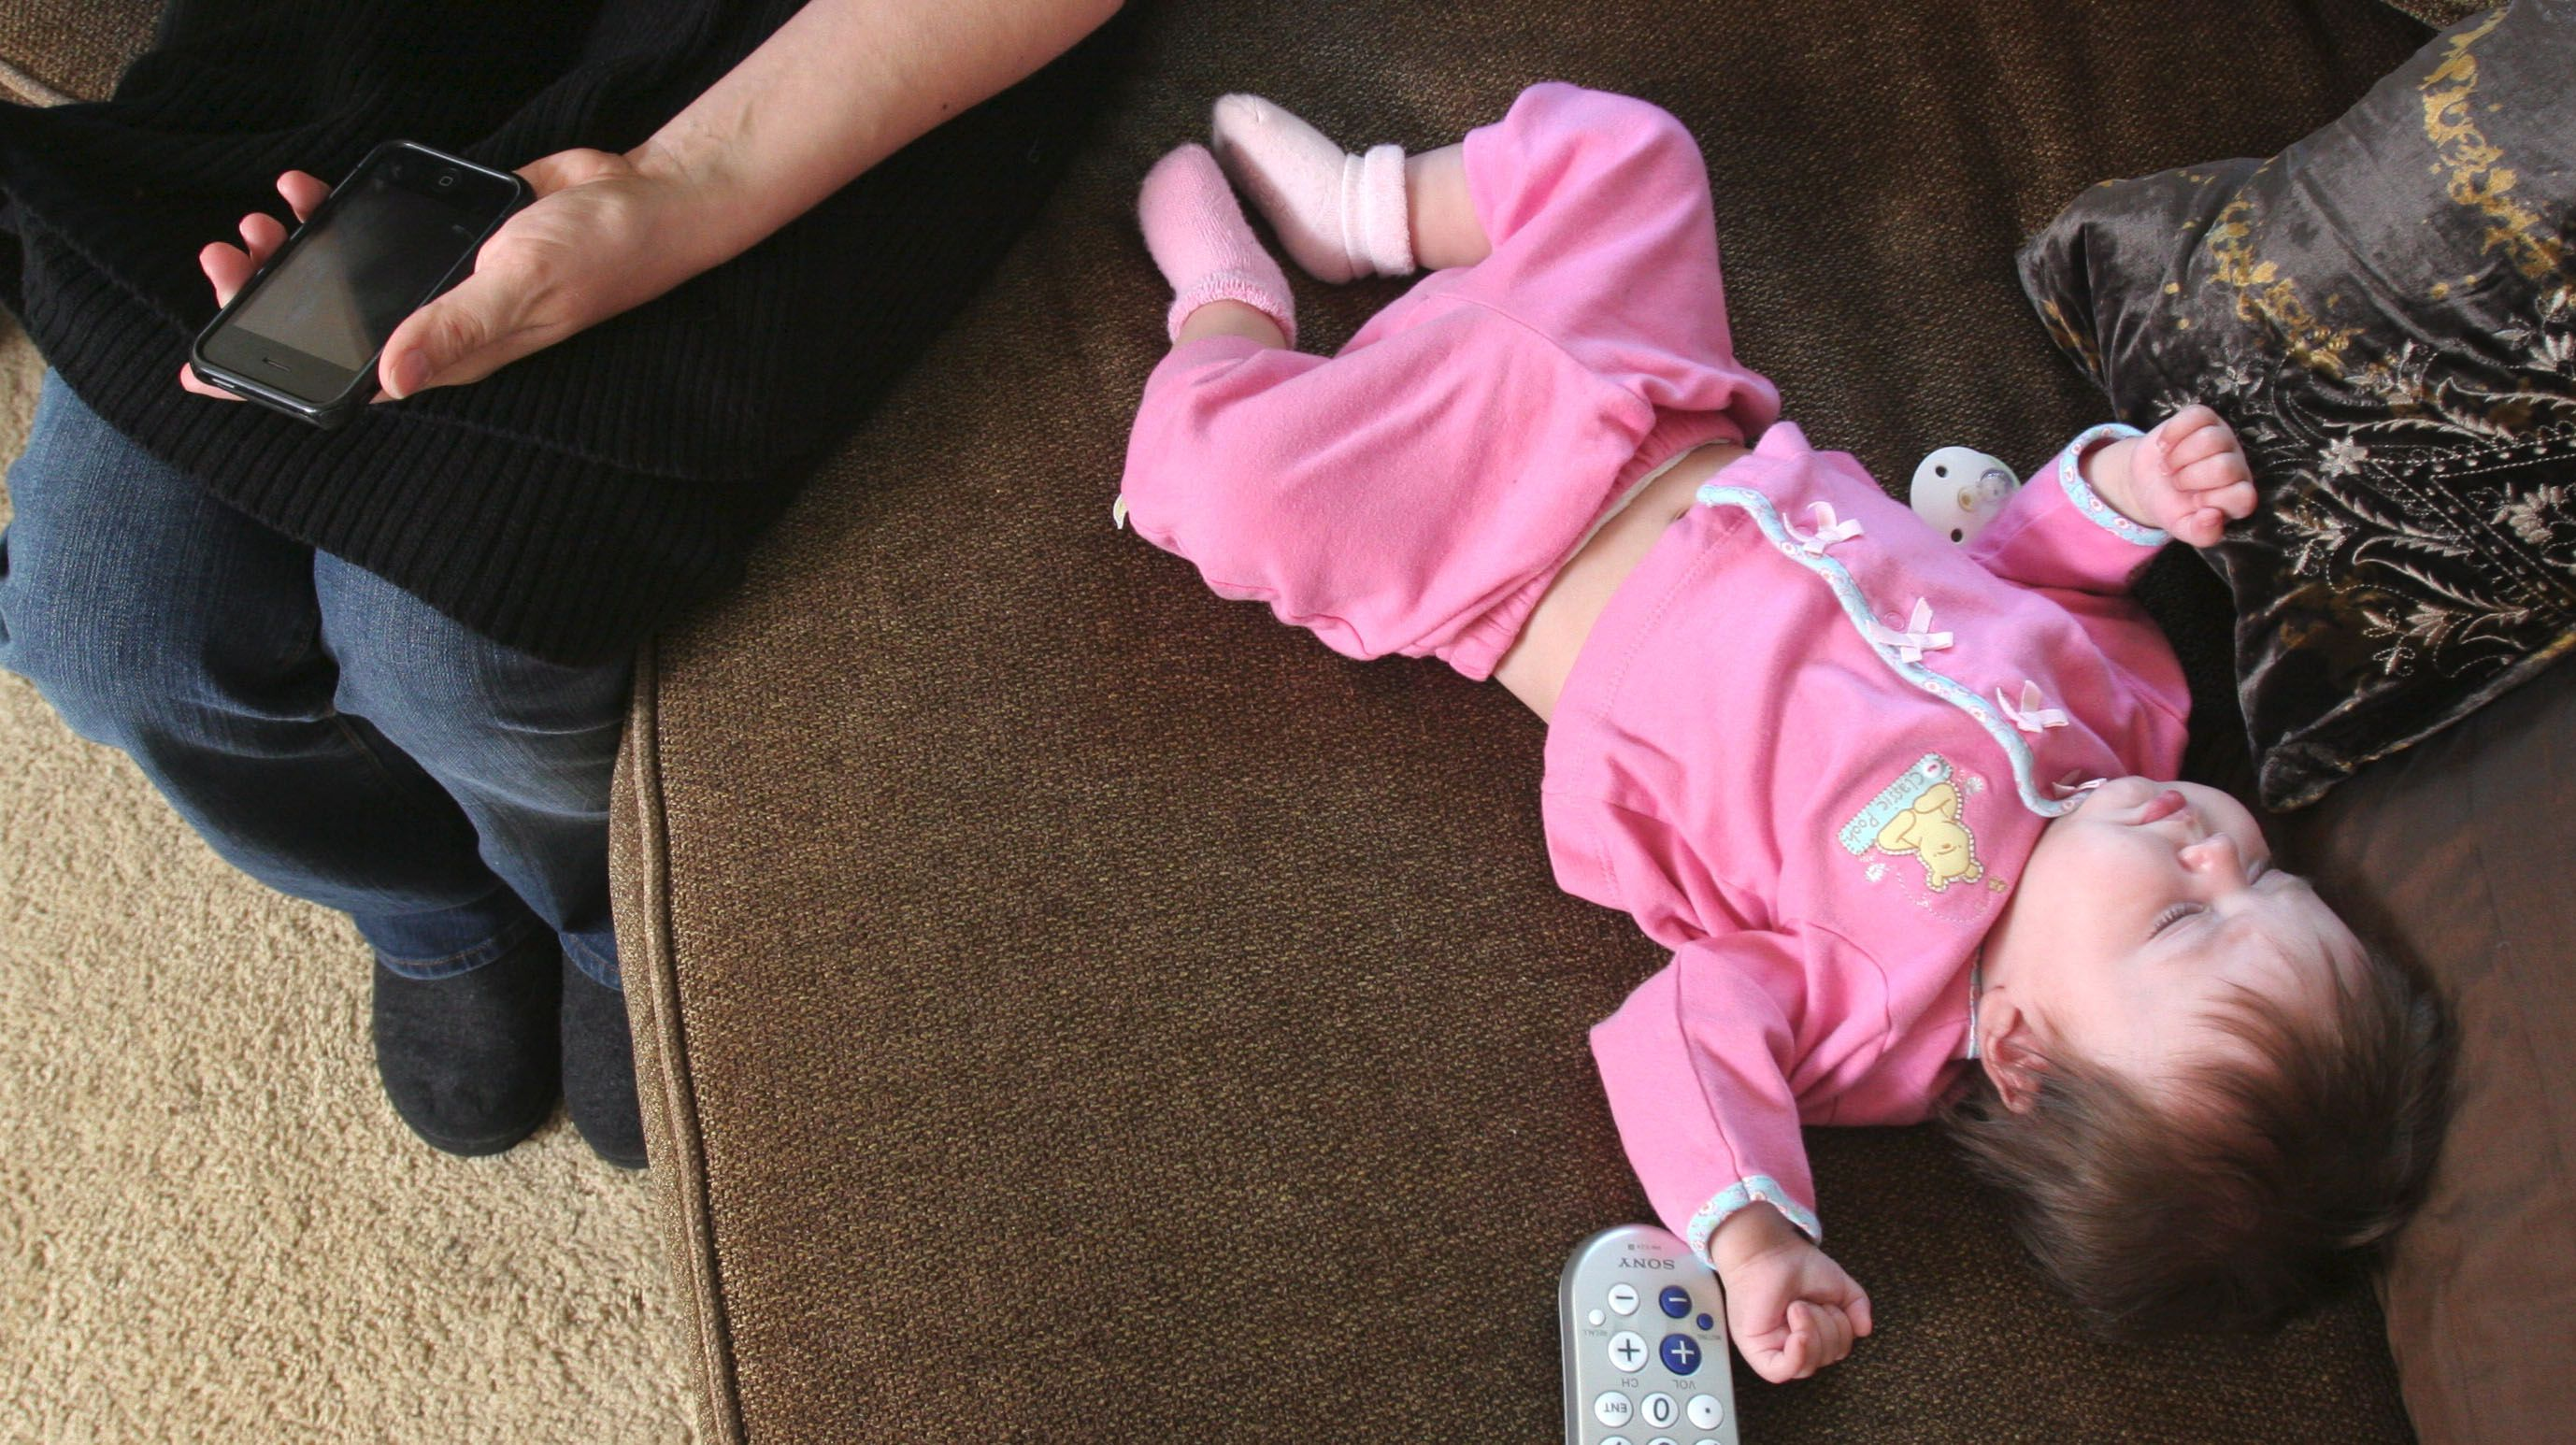 Eve Saarinen, 5 months, snoozes on the couch while her mother uses her iphone at the family's home in Shoreview, Minn., on Saturday, May 17, 2009. (AP PHOTO/ THOMAS WHISENAND)